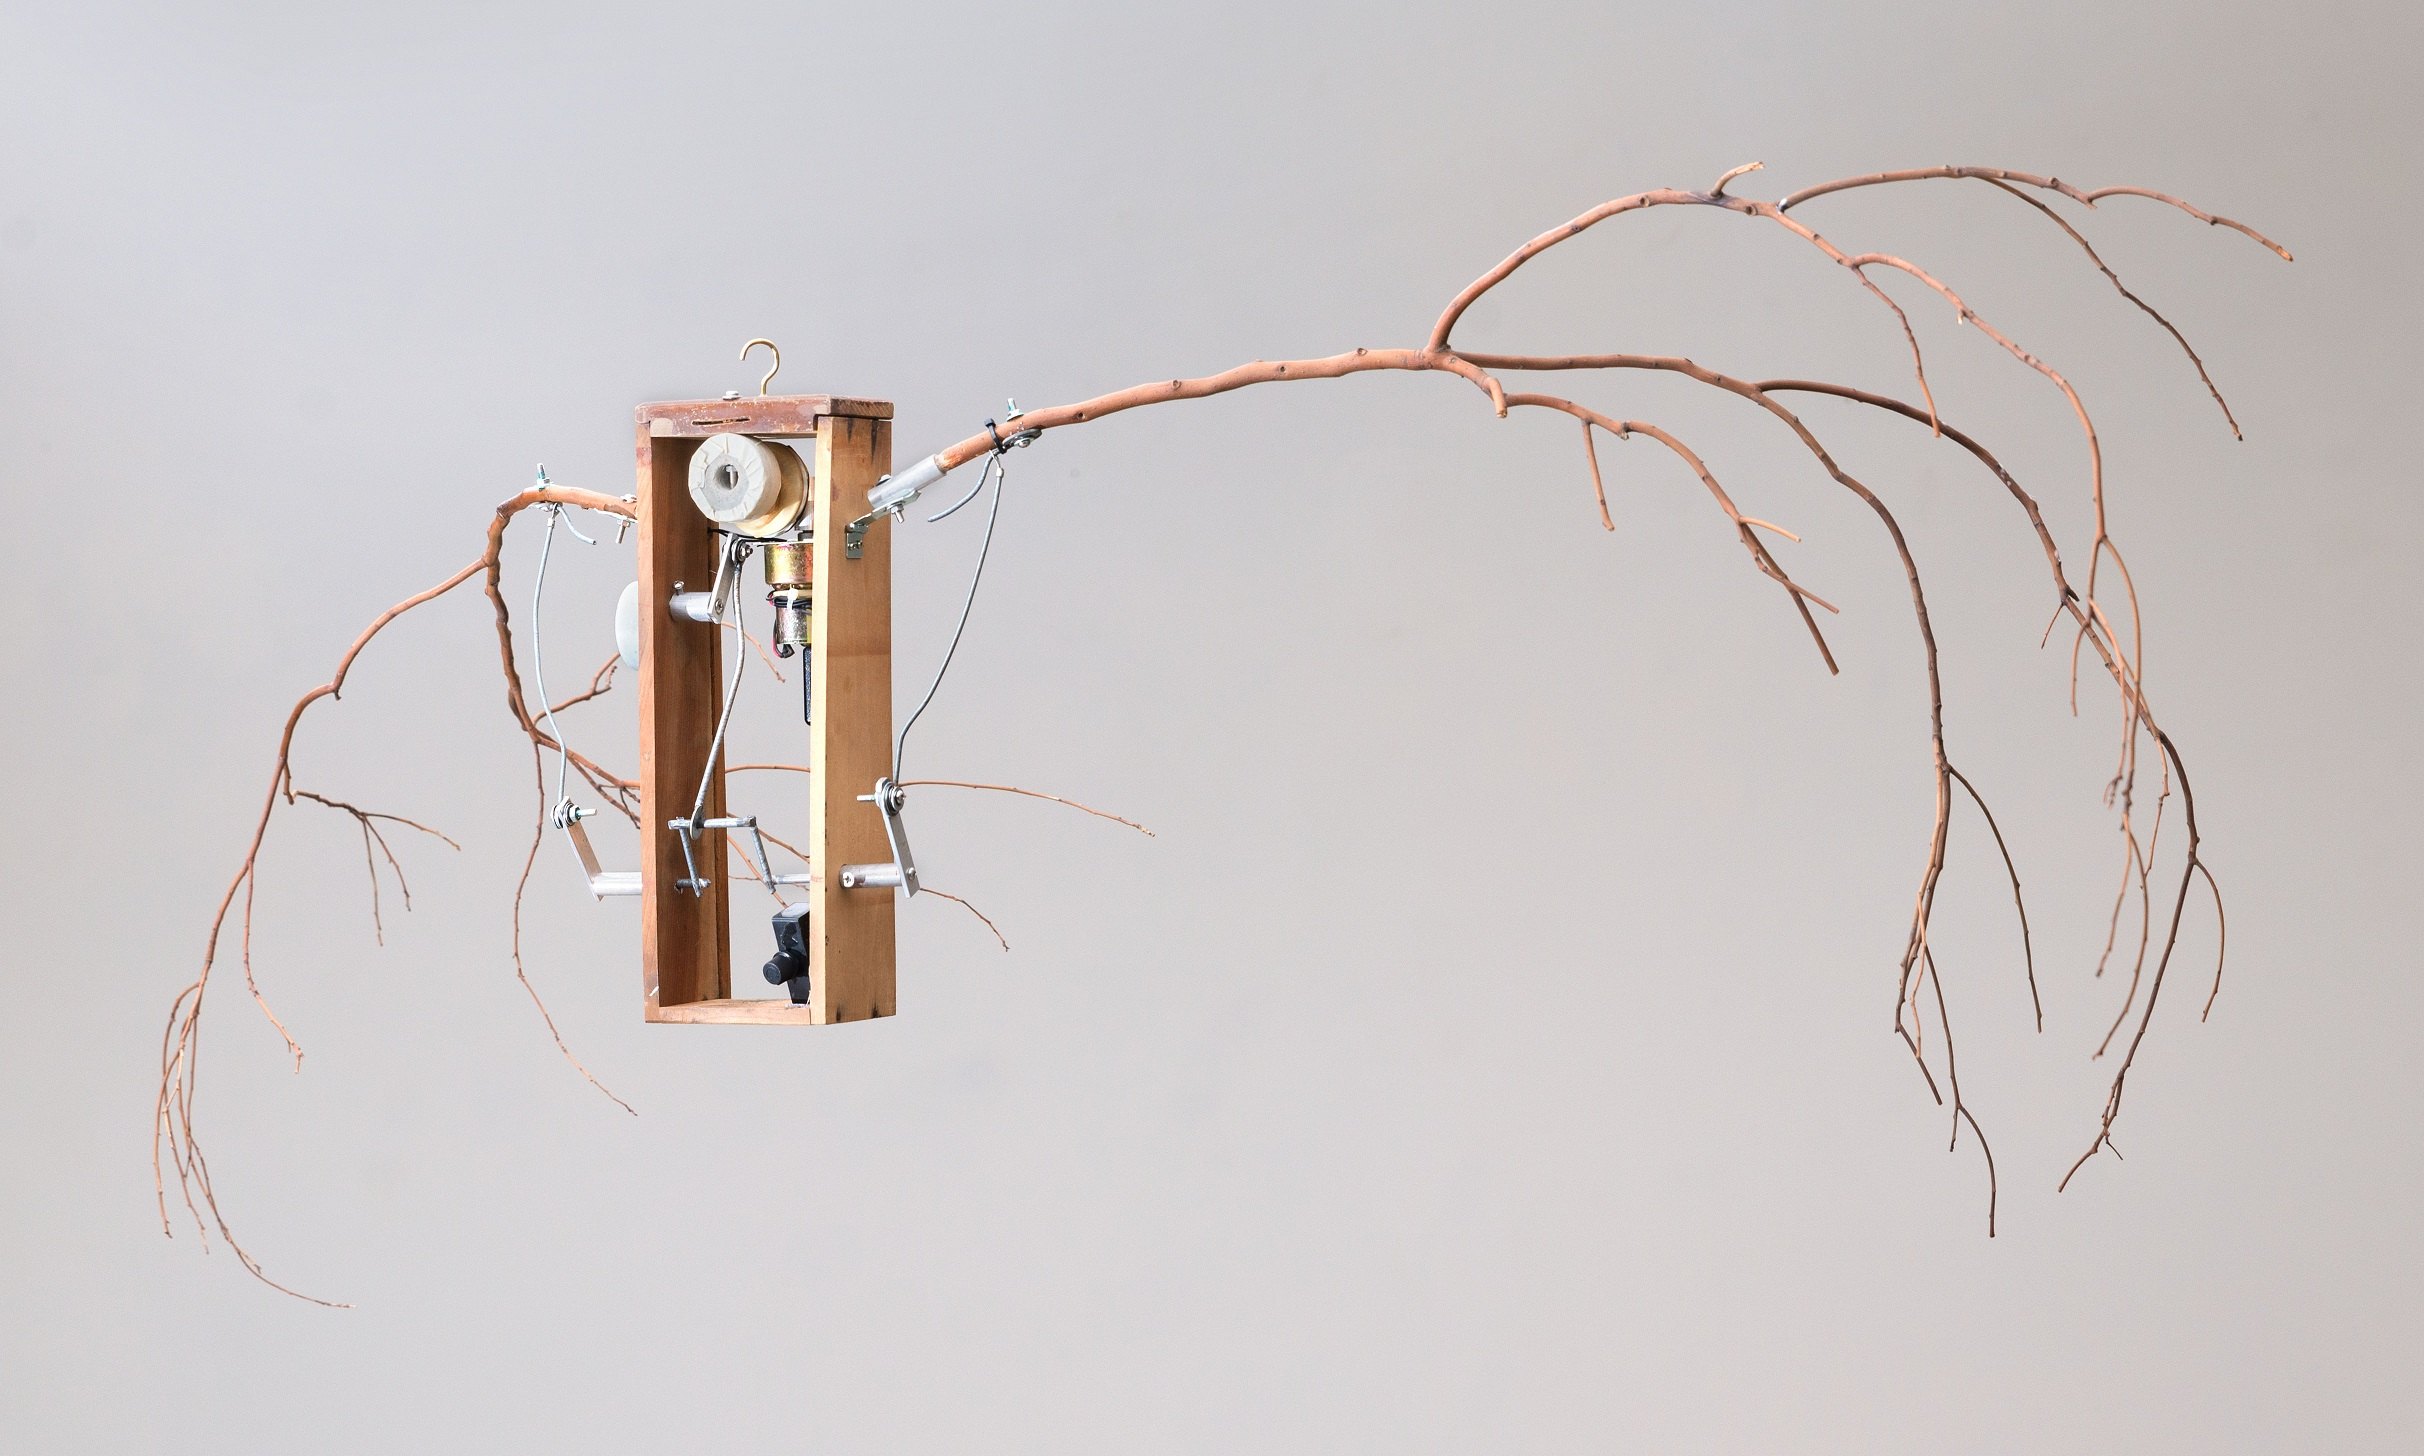 Jungle Voice - the Bird|40×165×8 cm|2015|Branch, Wood Box, Motor